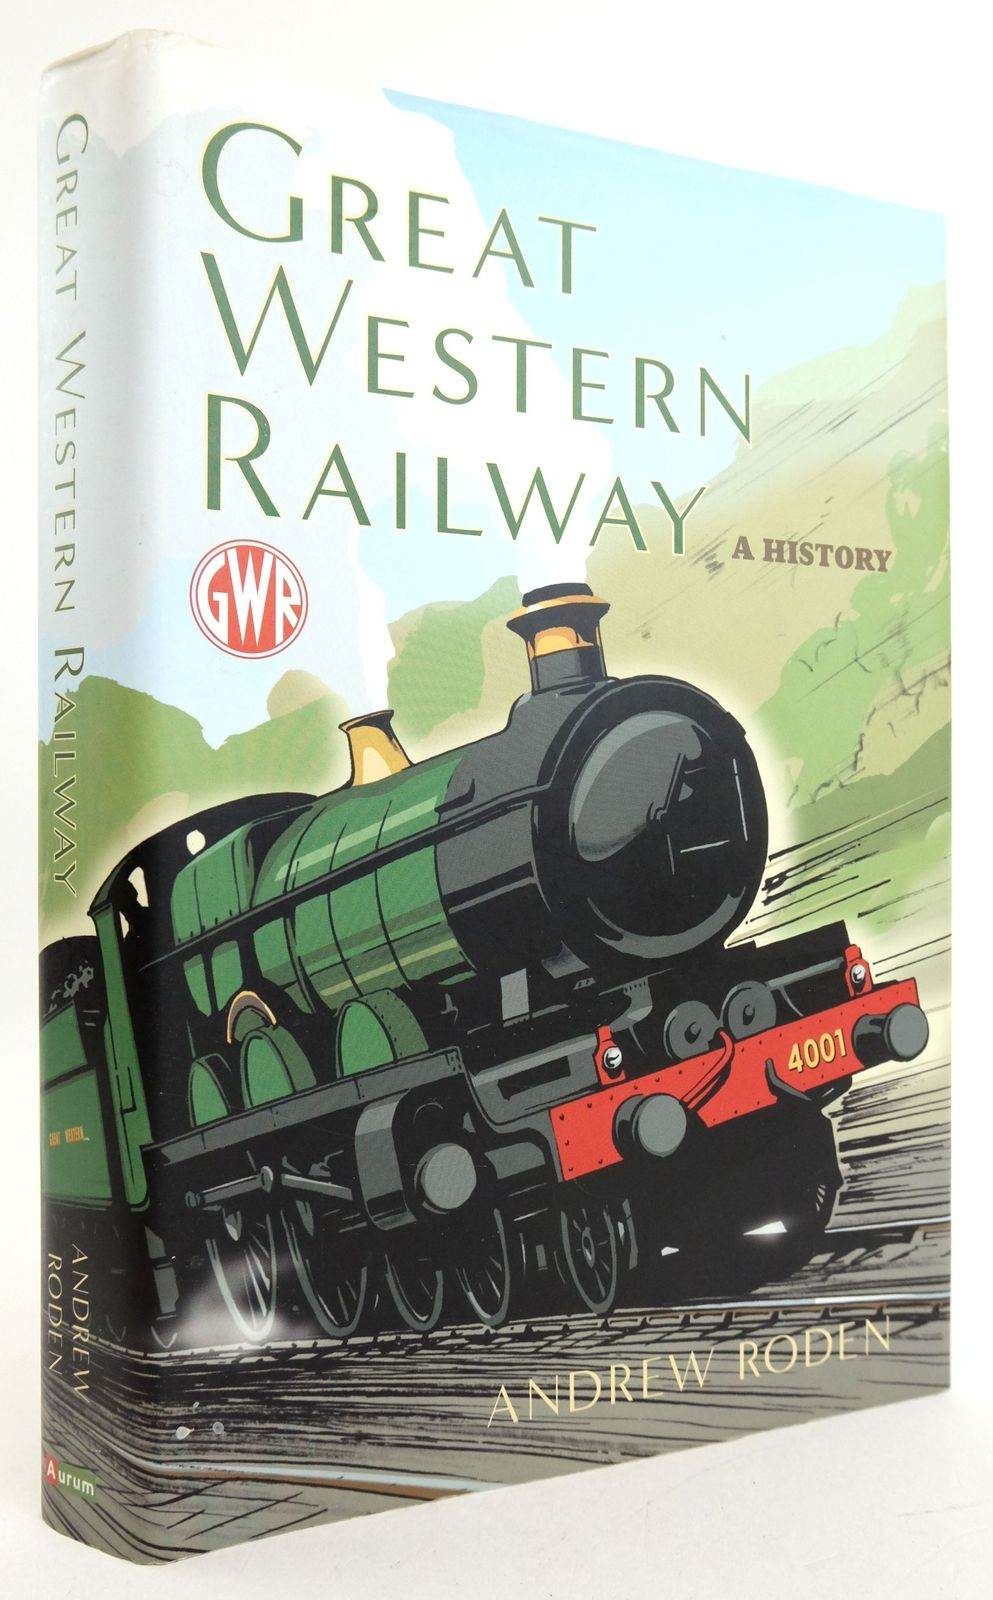 Photo of GREAT WESTERN RAILWAY: A HISTORY written by Roden, Andrew published by Aurum Press (STOCK CODE: 1819418)  for sale by Stella & Rose's Books